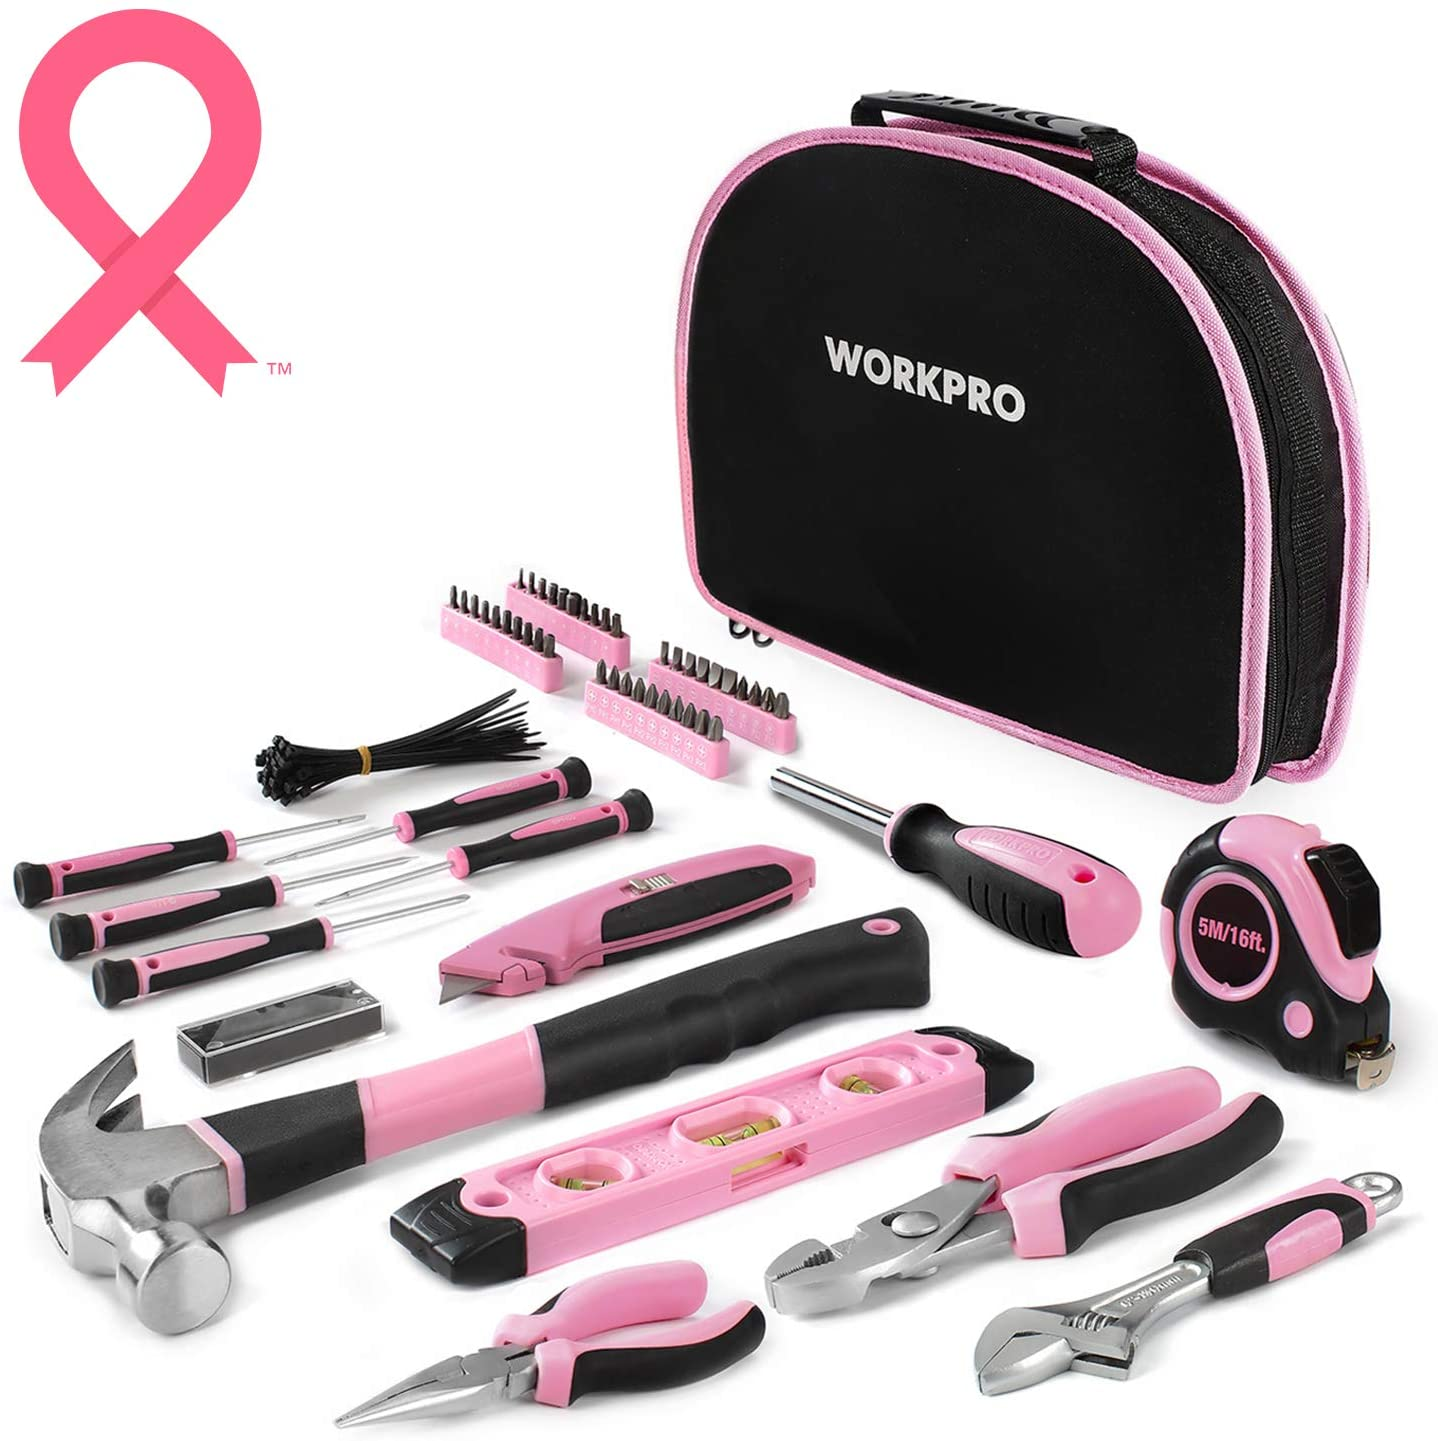 WORKPRO 103-Piece Pink Tool Kit - Ladies Hand Tool Set with Easy Carrying Round Pouch - Durable, Long Lasting Chrome Finish Tools - Perfect for DIY, Home Maintenance - Pink Ribbon